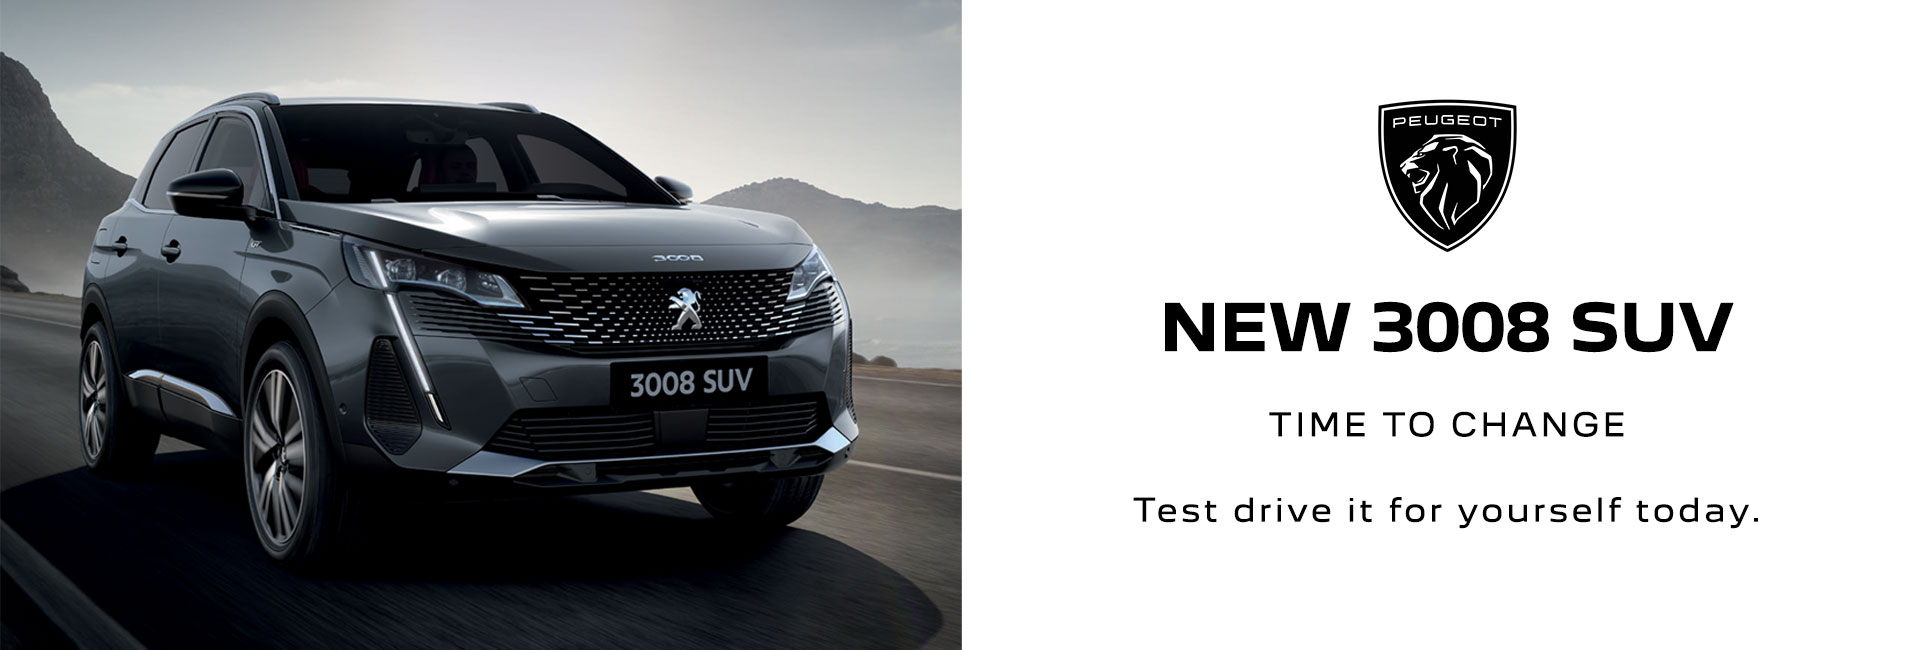 All New 3008 SUV Peugeot